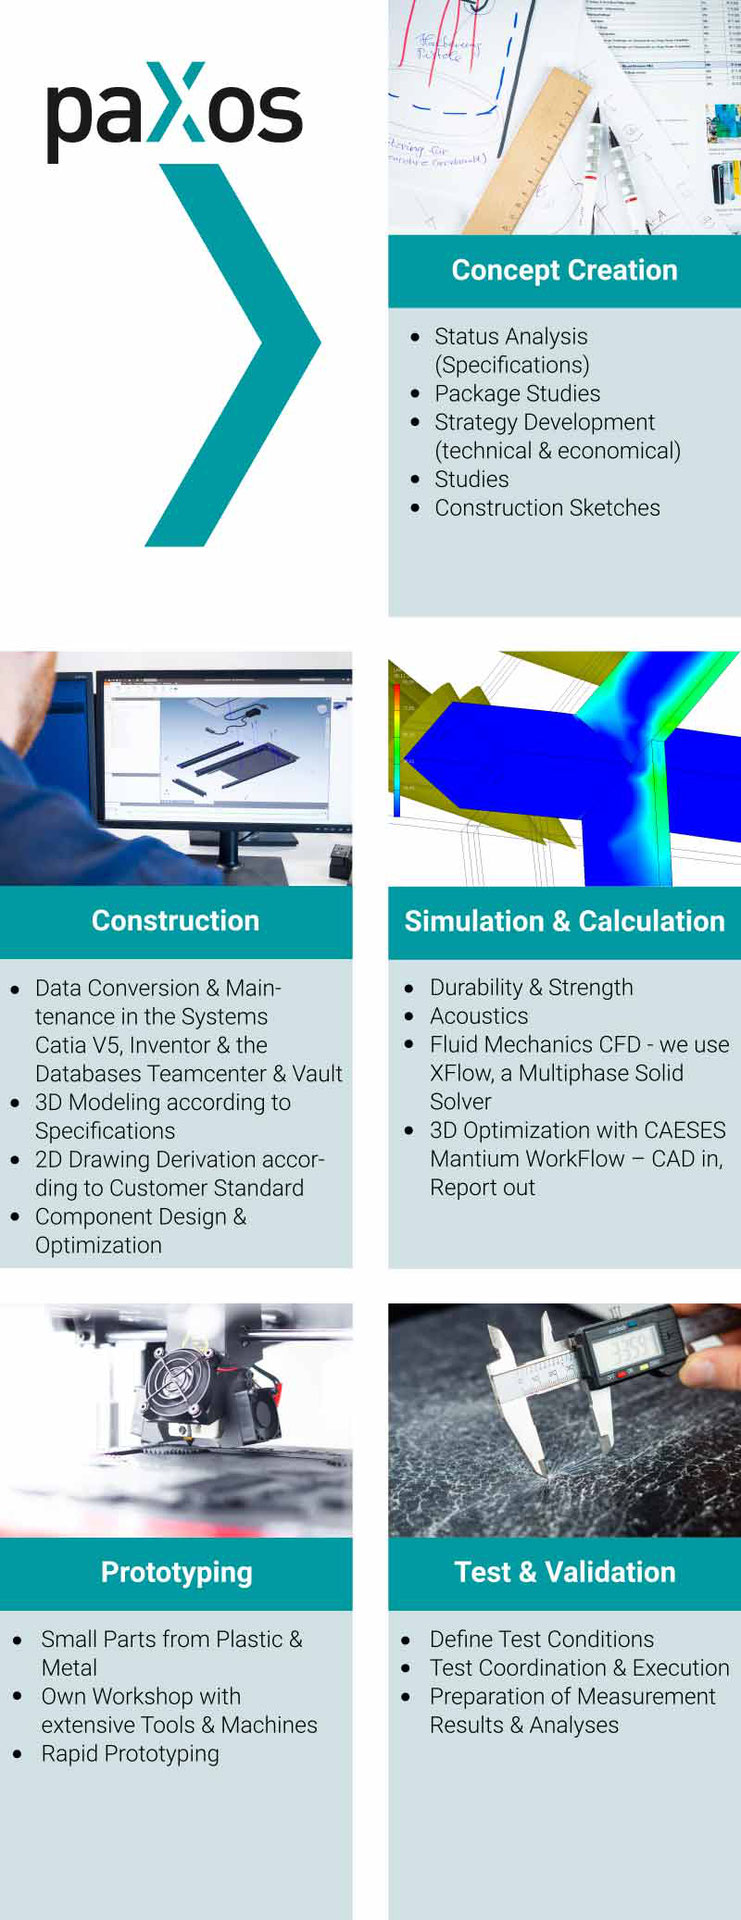 paXos Engineering Sectors: Concept Creation, Construction, Simulation & Calculation, Protoyping and Test & Validation